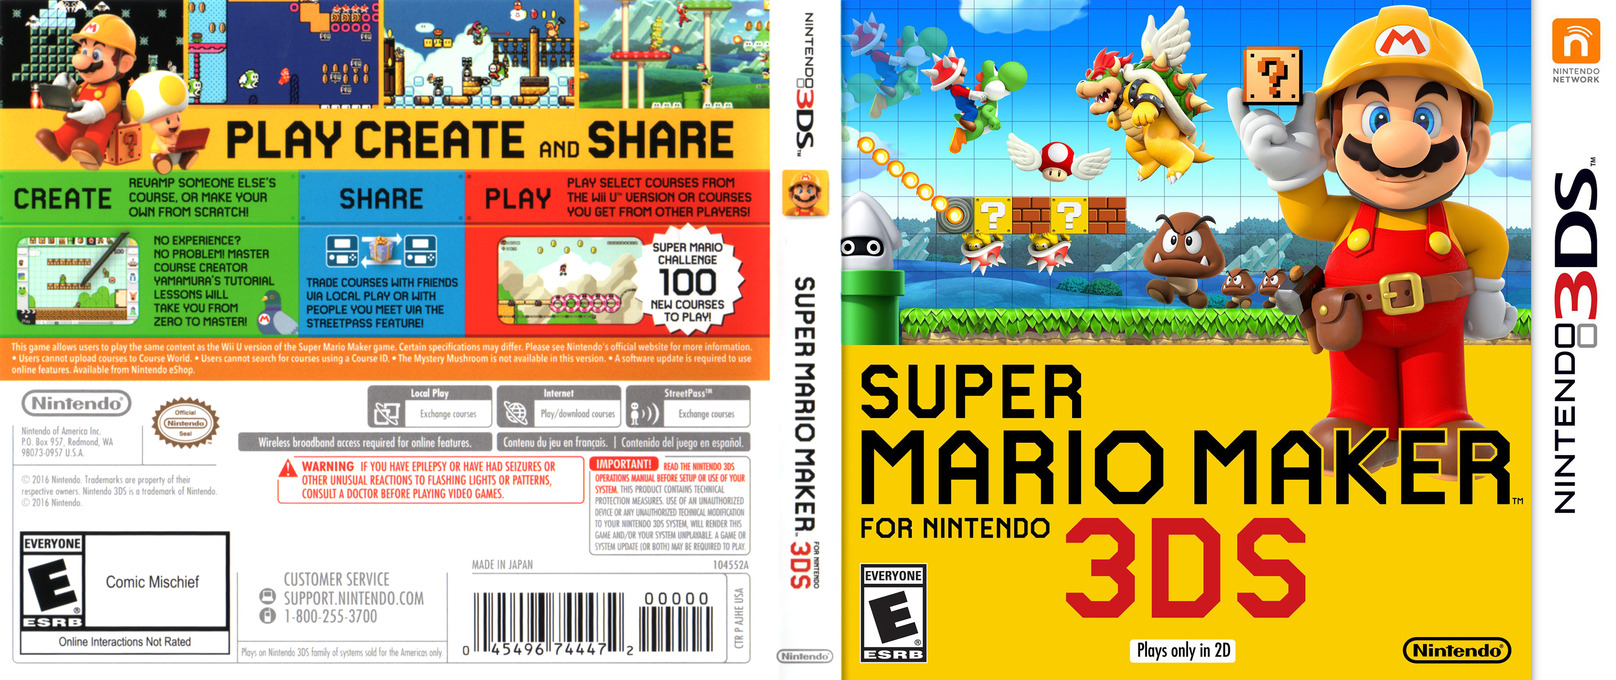 ajhe super mario maker for nintendo 3ds